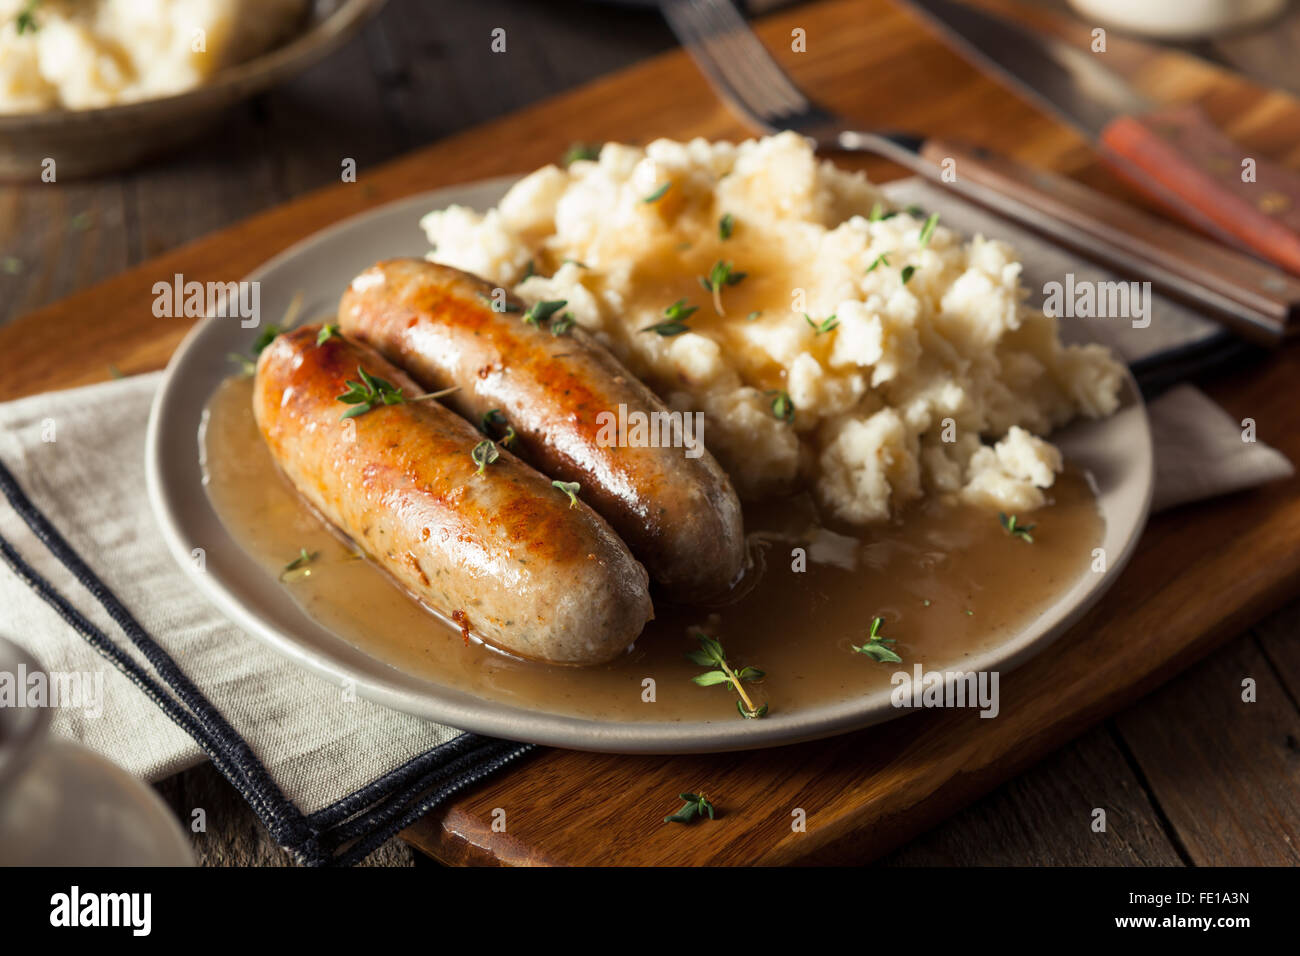 Homemade Bangers and Mash with Herbs and Gravy Stock Photo